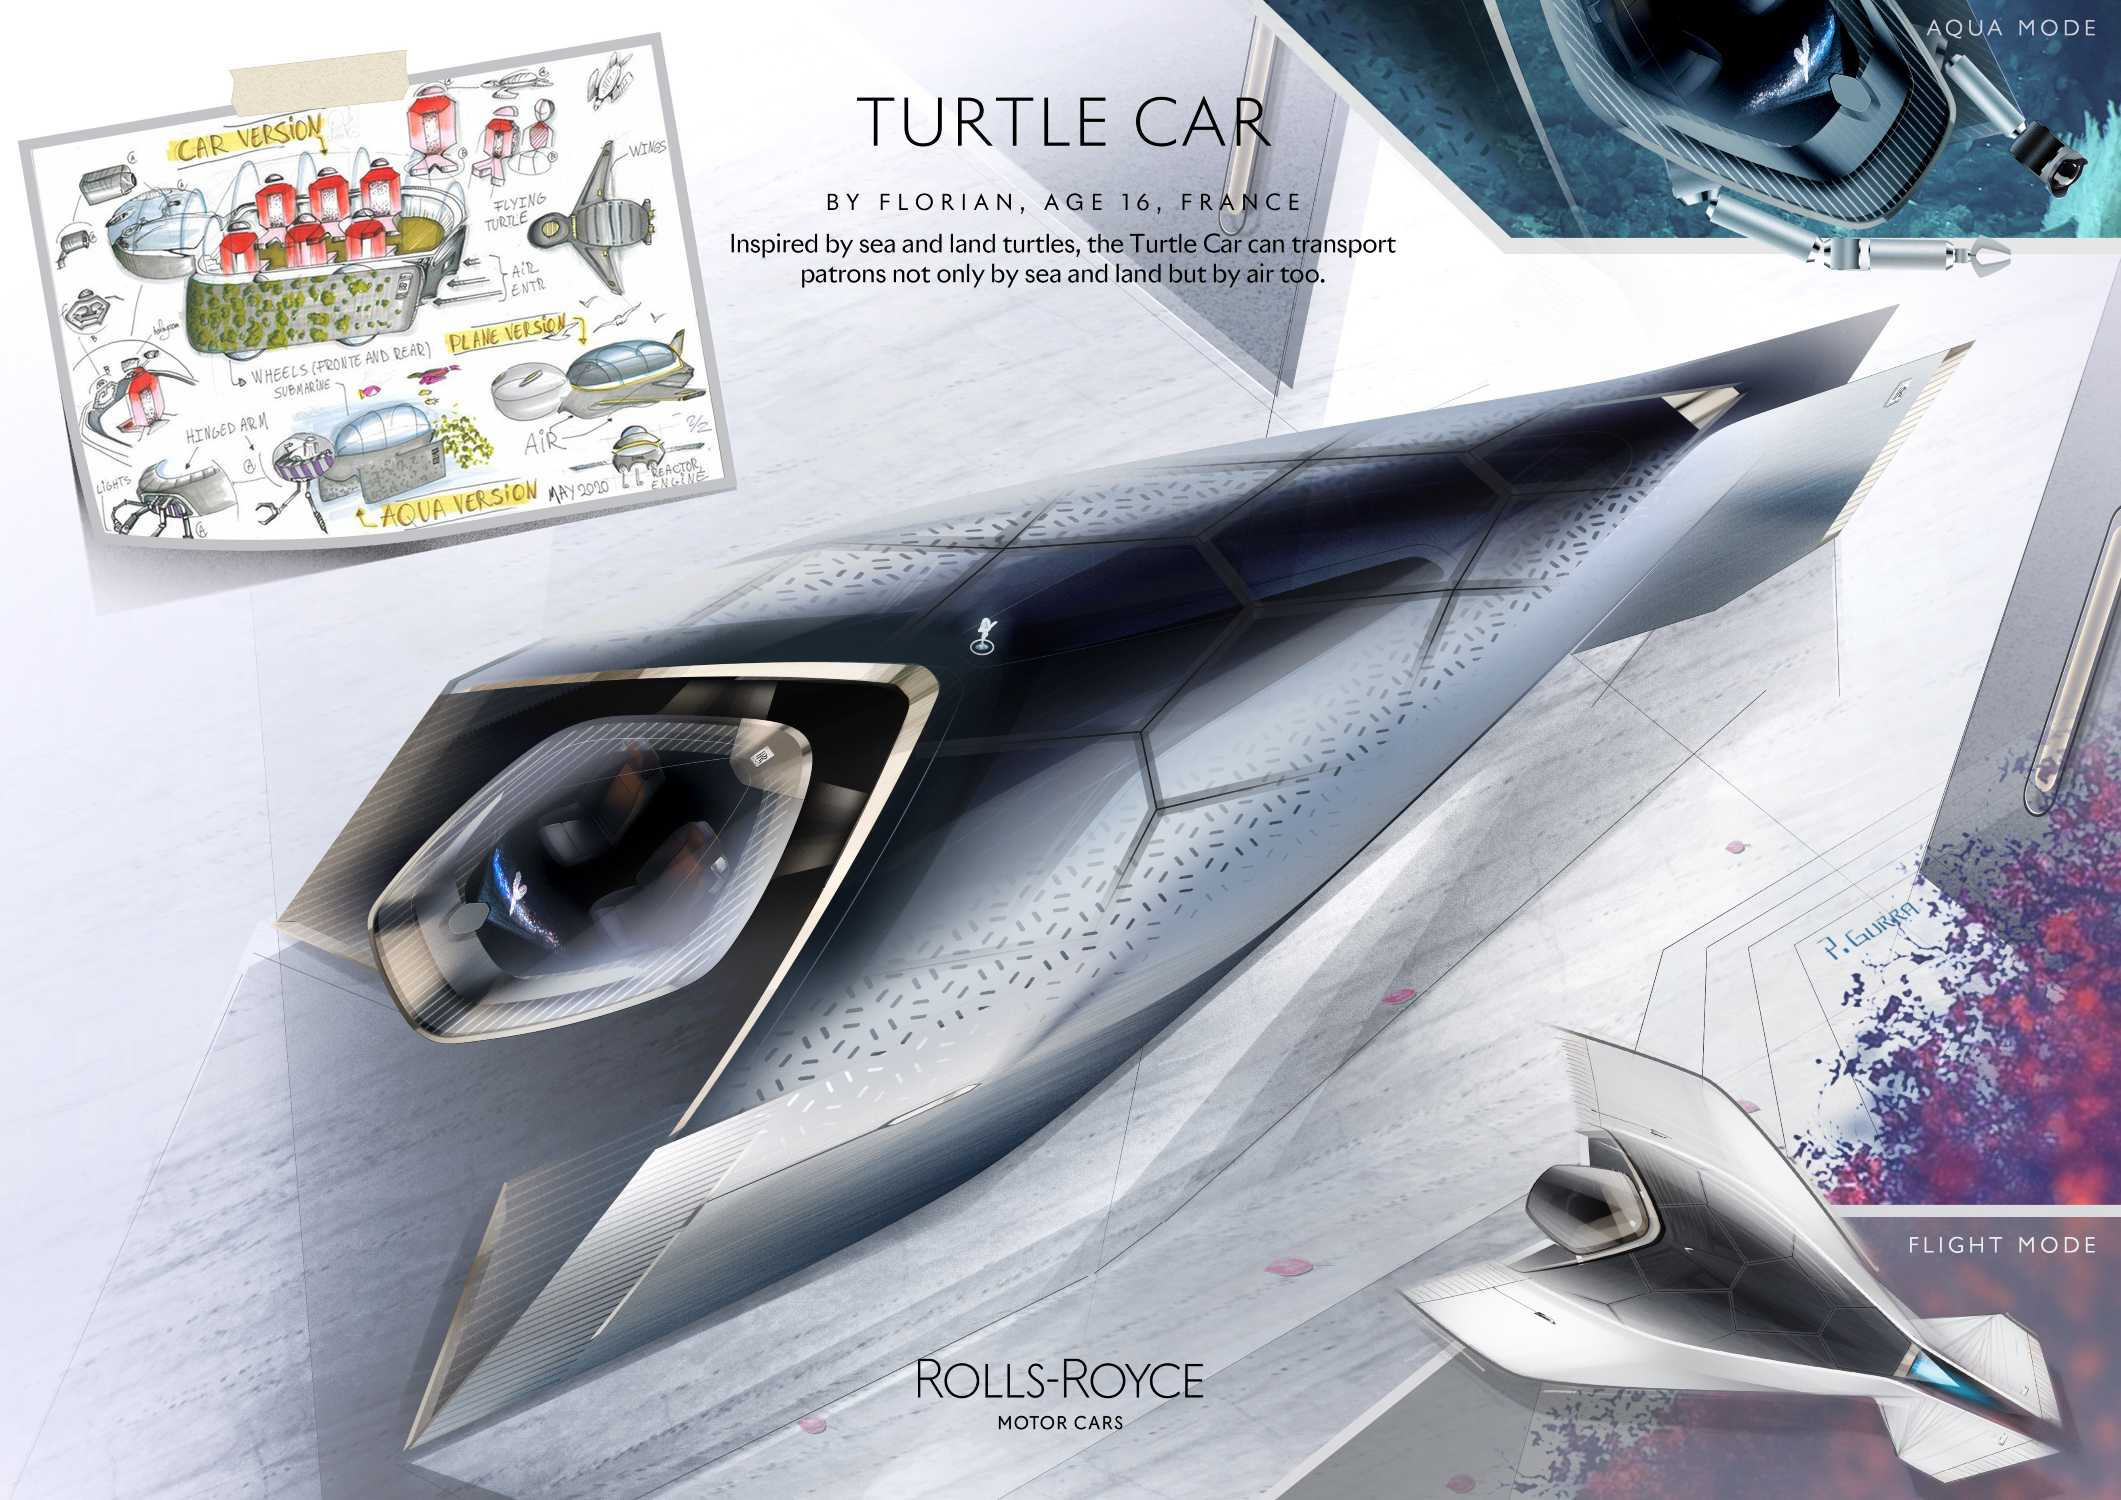 ROLLS-ROYCE TURTLE CAR, BY FLORIAN AGE 16, FRANCE. FANTASY CATEGORY WINNER IN THE ROLLS-ROYCE YOUNG DESIGNER COMPETITION.